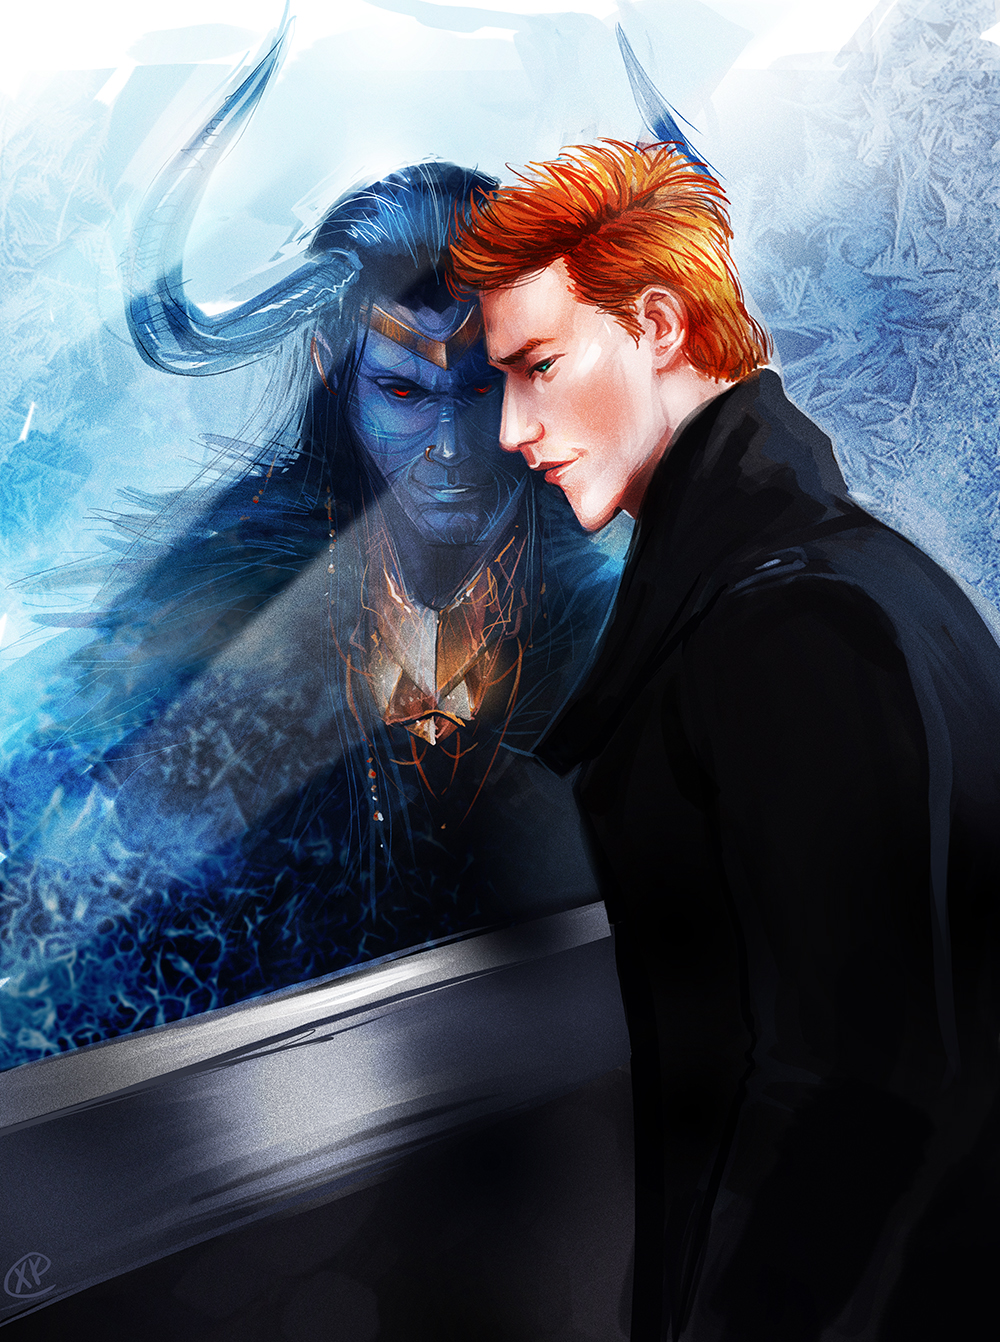 Loki Frozen Glass By Maxkennedy On Deviantart